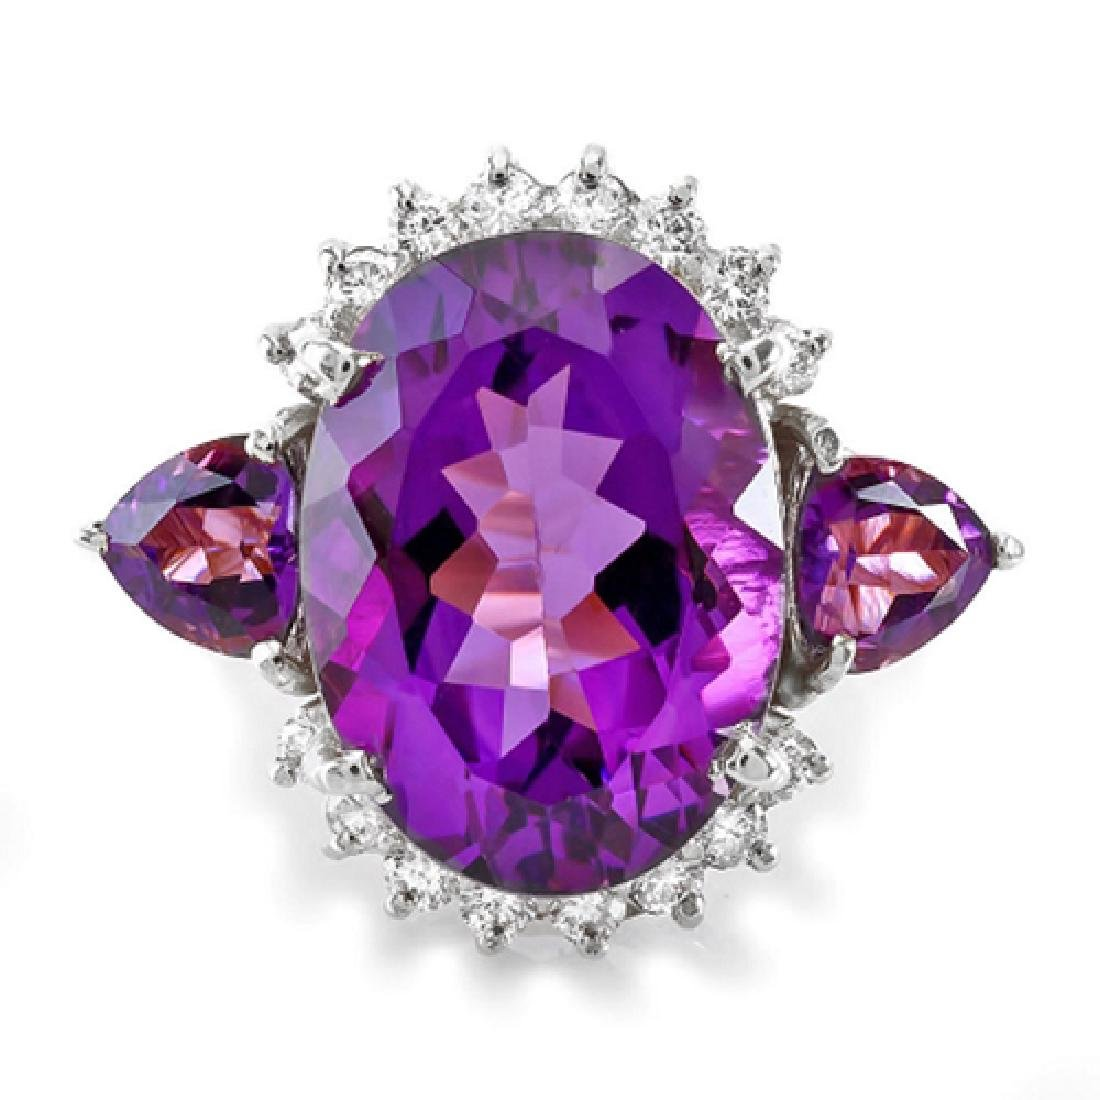 12.60 Carat Natural Amethyst 18K Solid White Gold